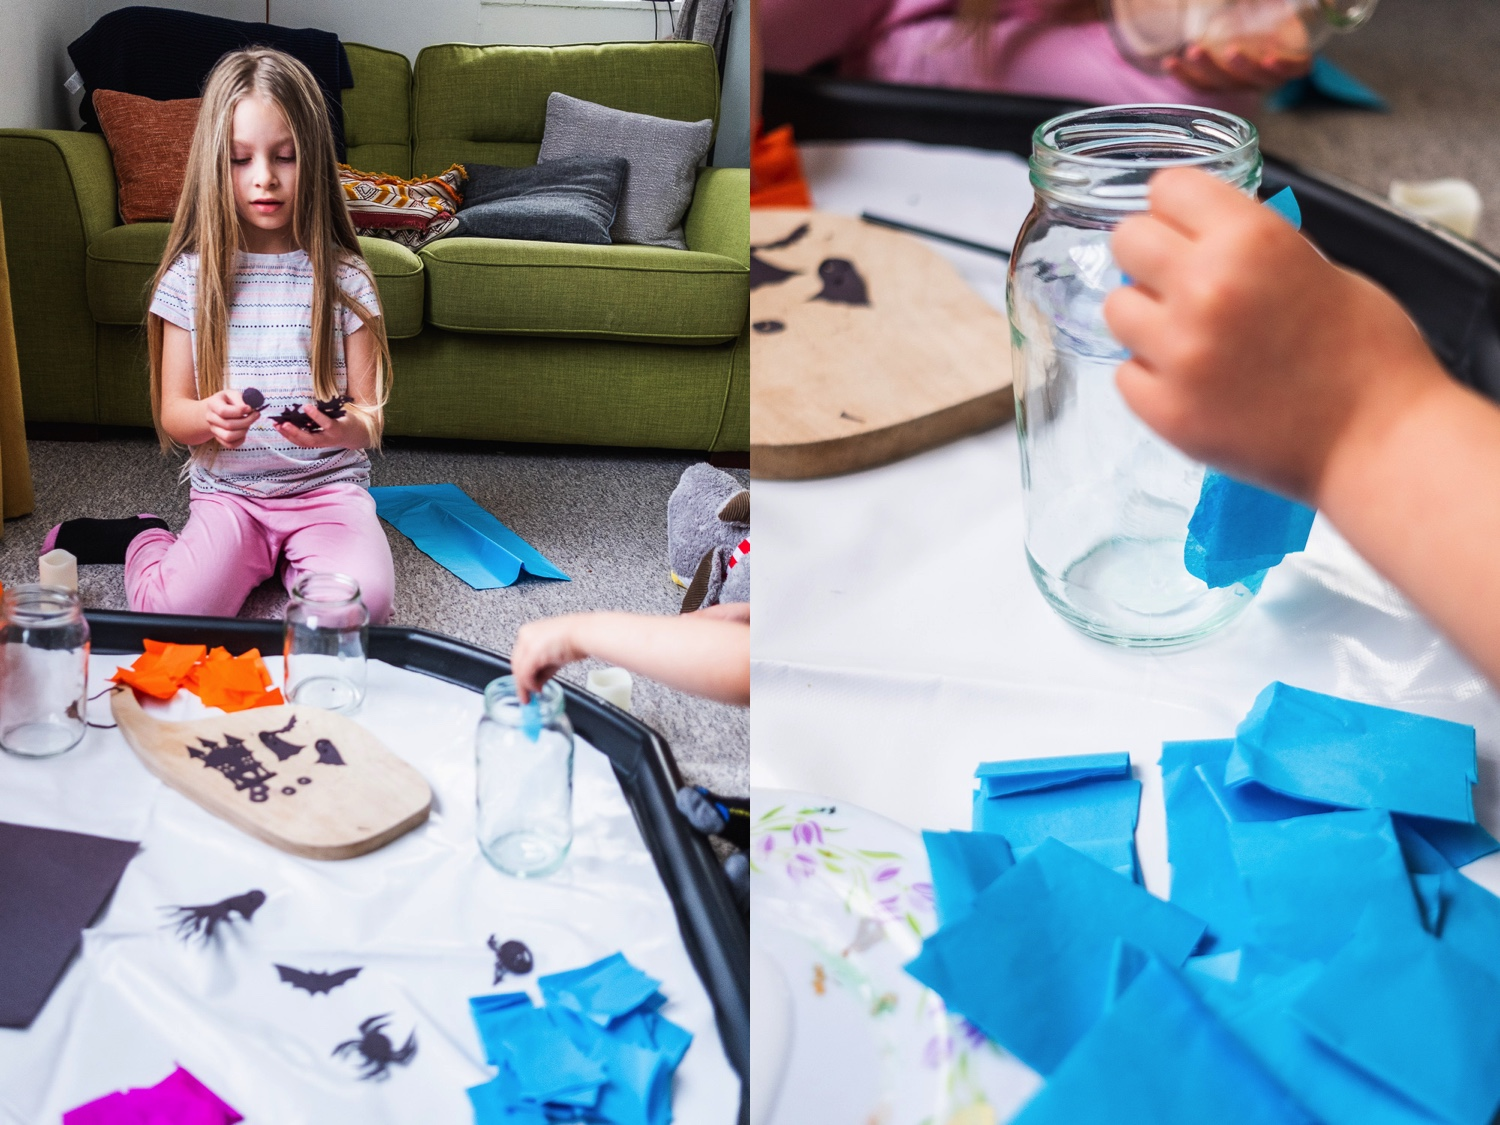 There's no excuses for not making some of these amazing lanterns this Halloween. Quick, cheap but so impressive! www.realfamilyjourney.com #halloween #lanterns #craft #unschool